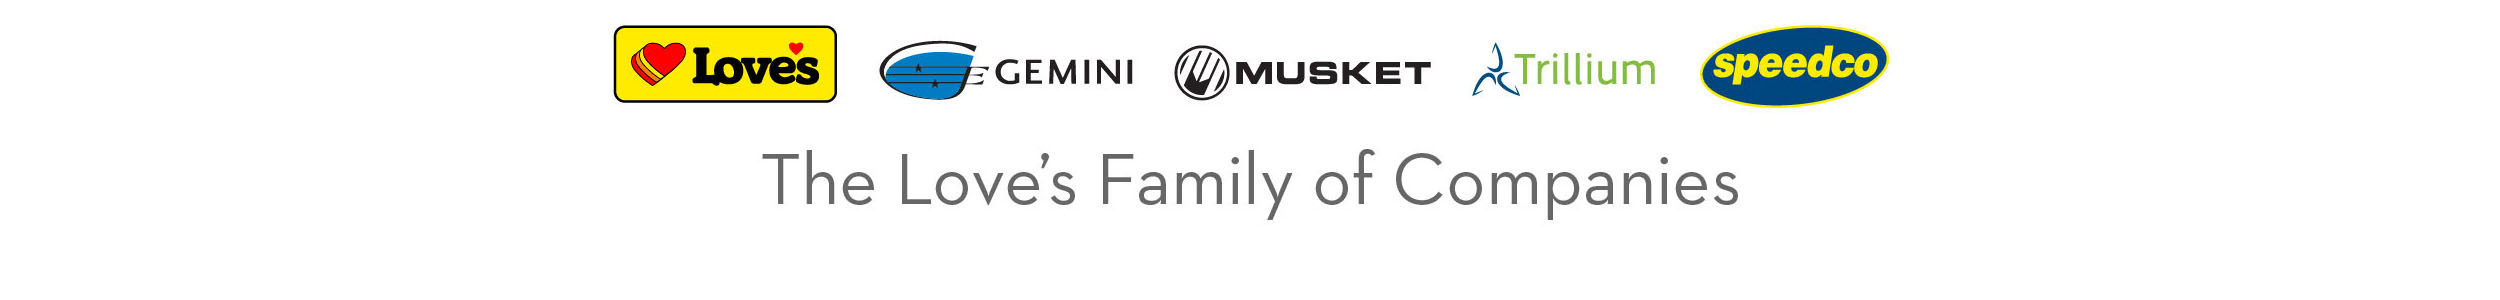 About the Love's Family of Companies